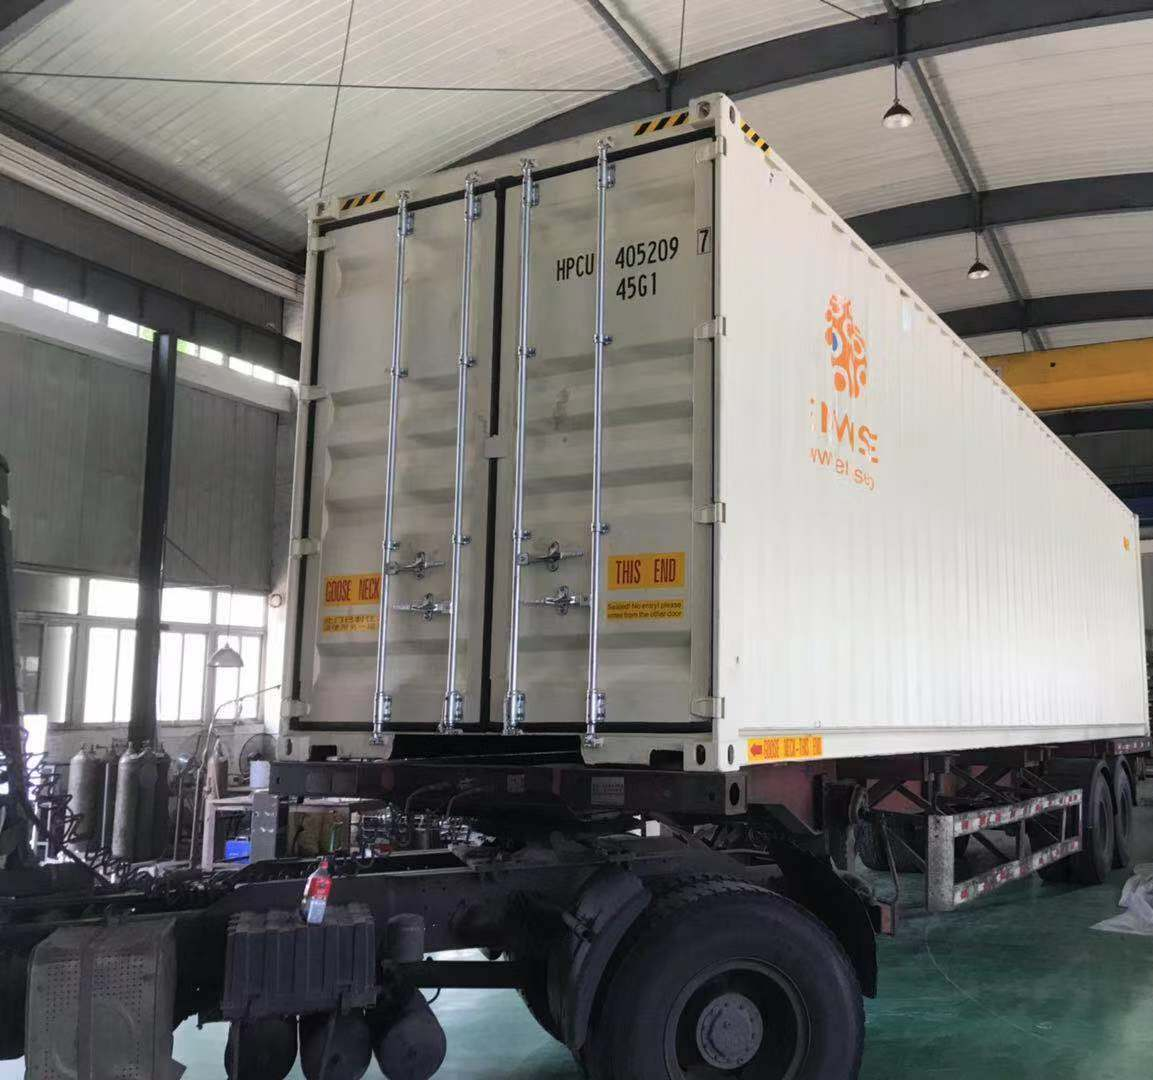 The Pilot Unit Designed For The Demonstration Site In Lyon Now Shipped From China – Big Launch Planned Upon Its Arrival!